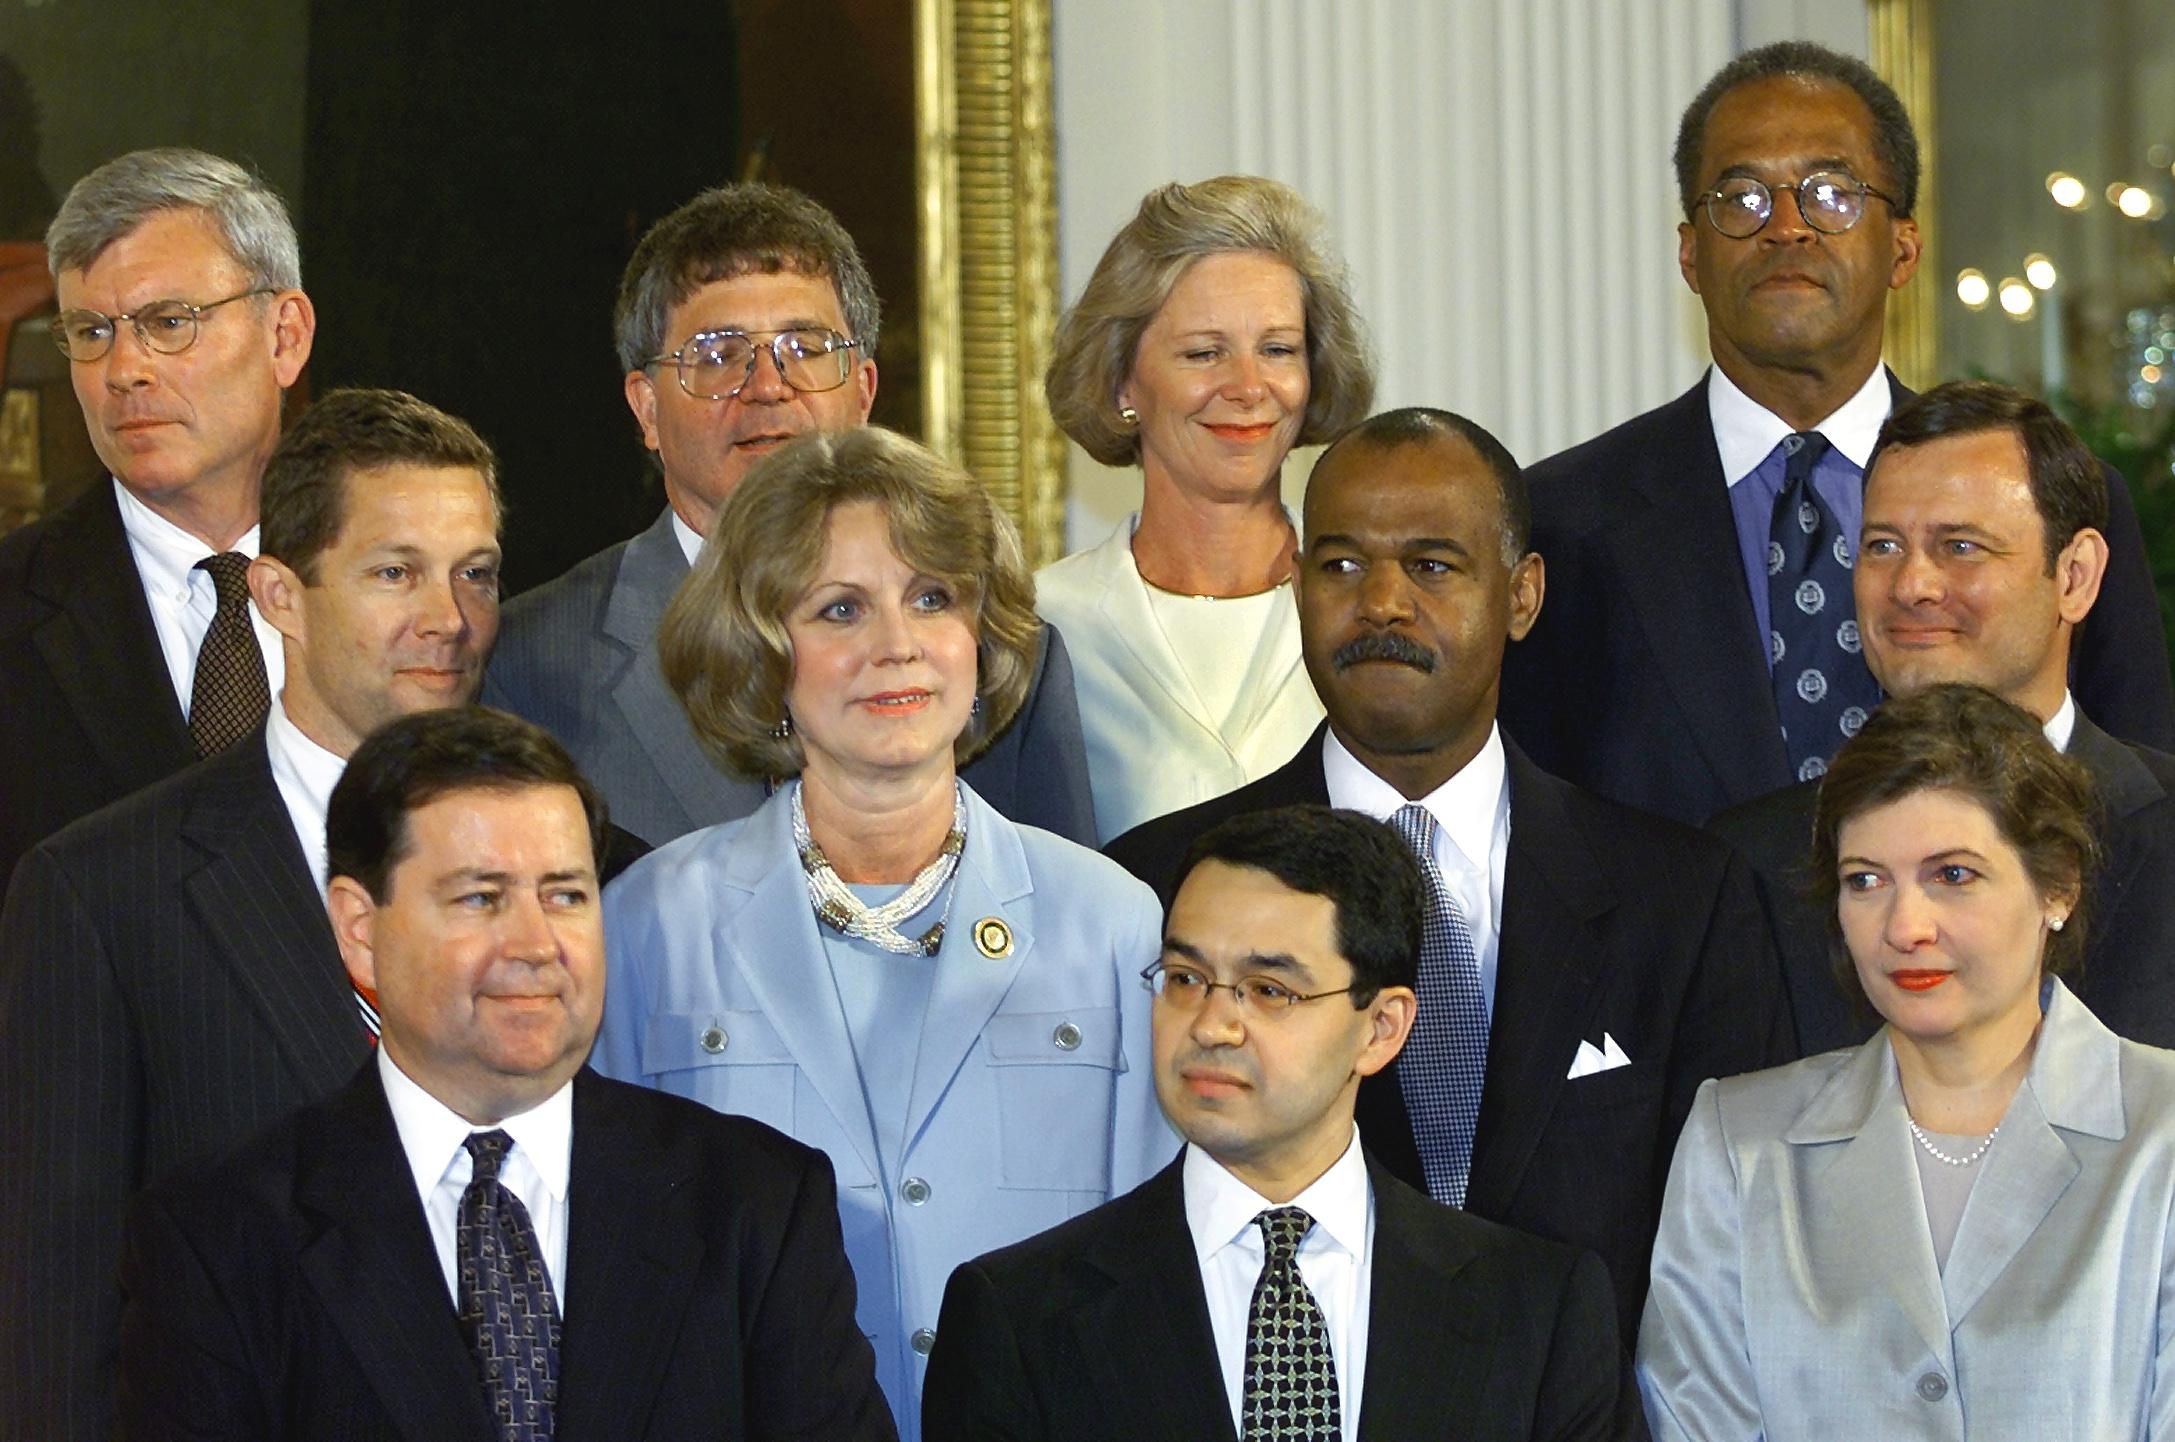 Judge Edith Brown Clement (middle row, second from the left). Spot a young John Roberts on the right.